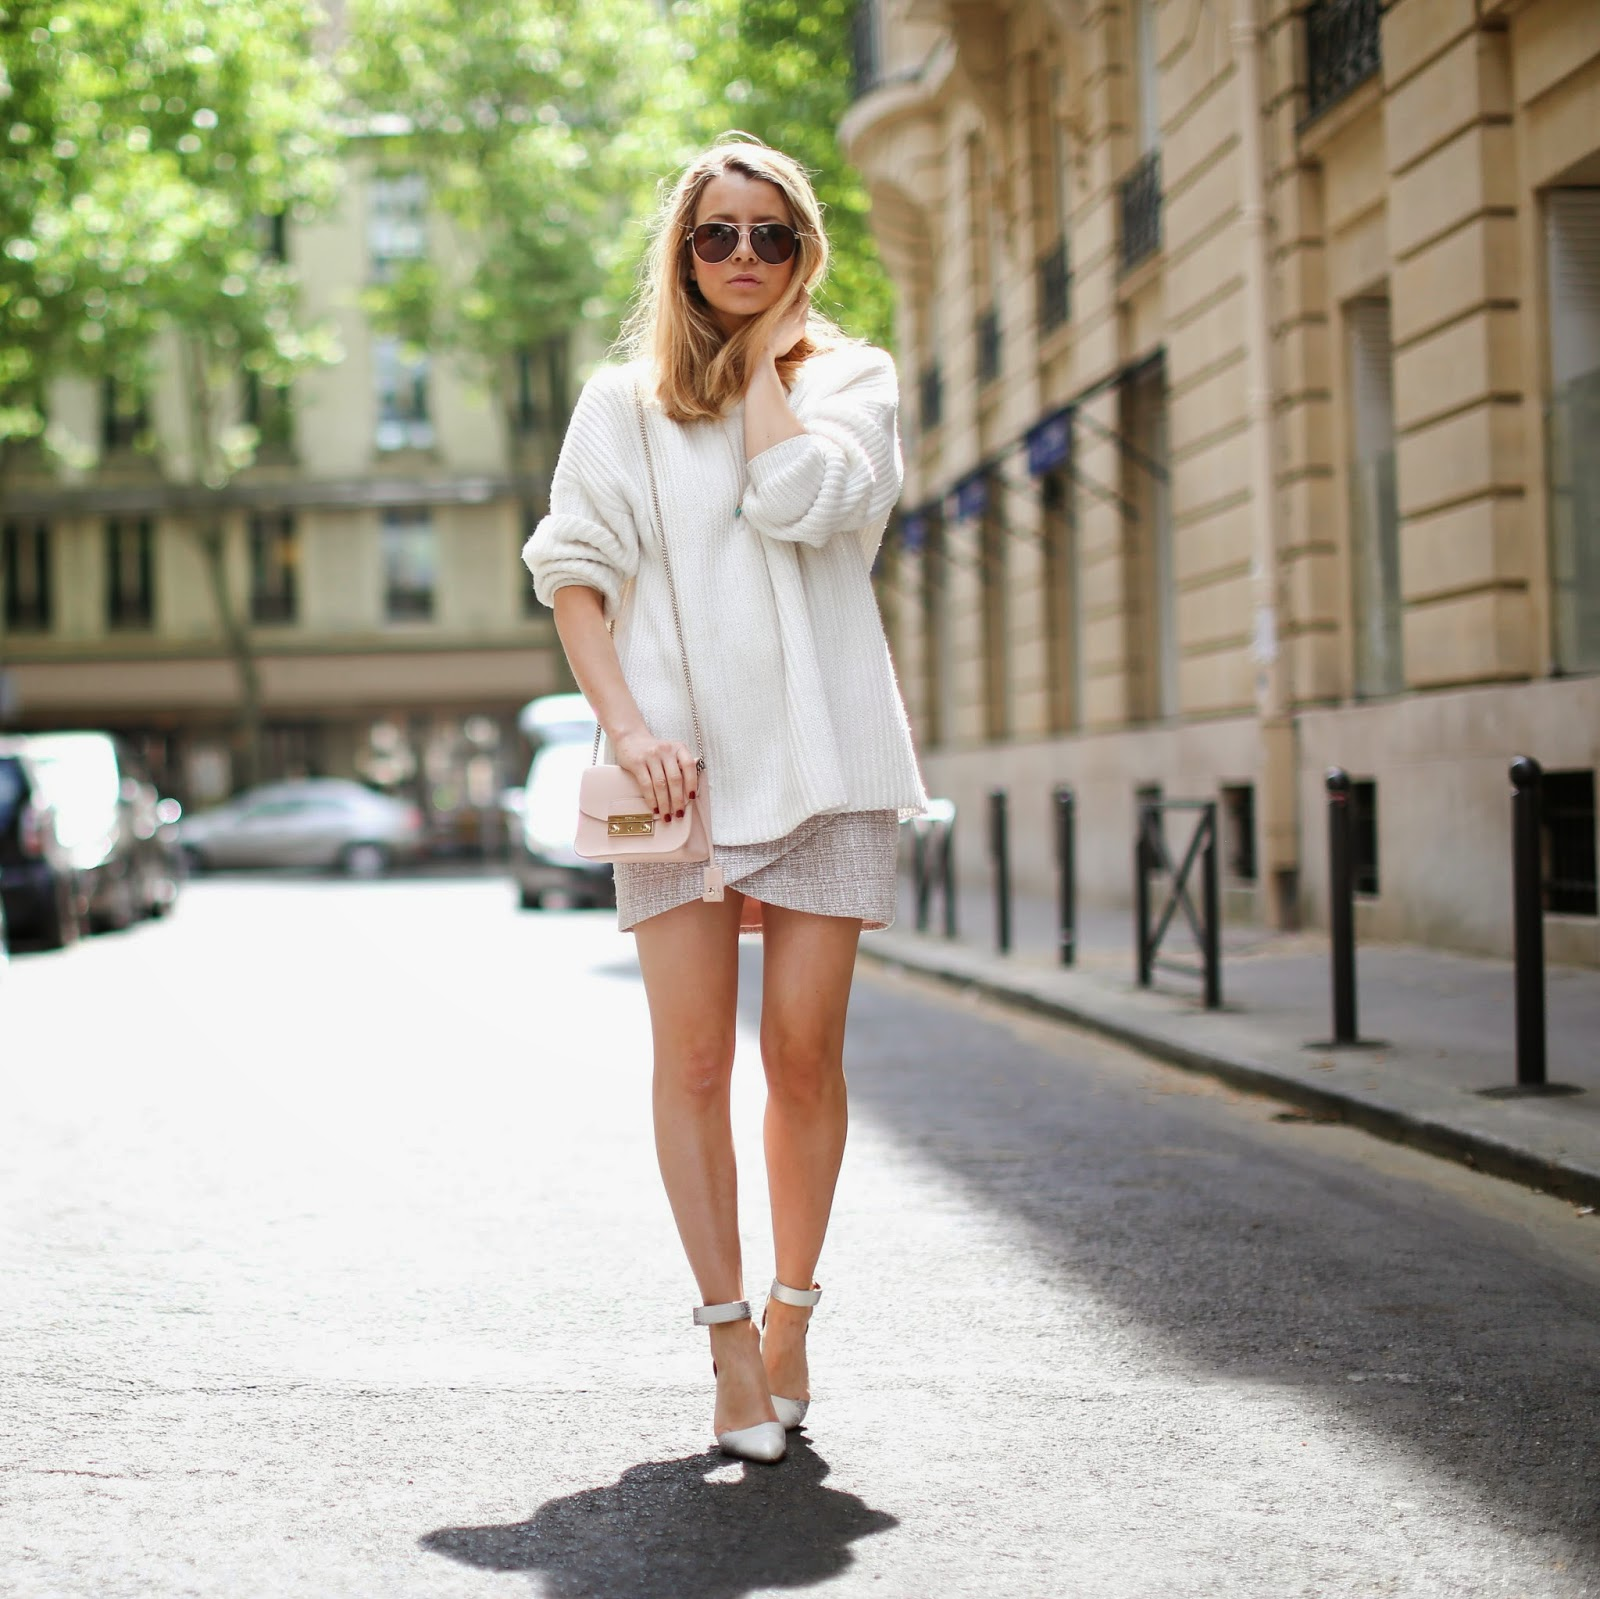 bd1624f53d8 Caroline Louis is wearing a creme knitted sweater with a mini skirt